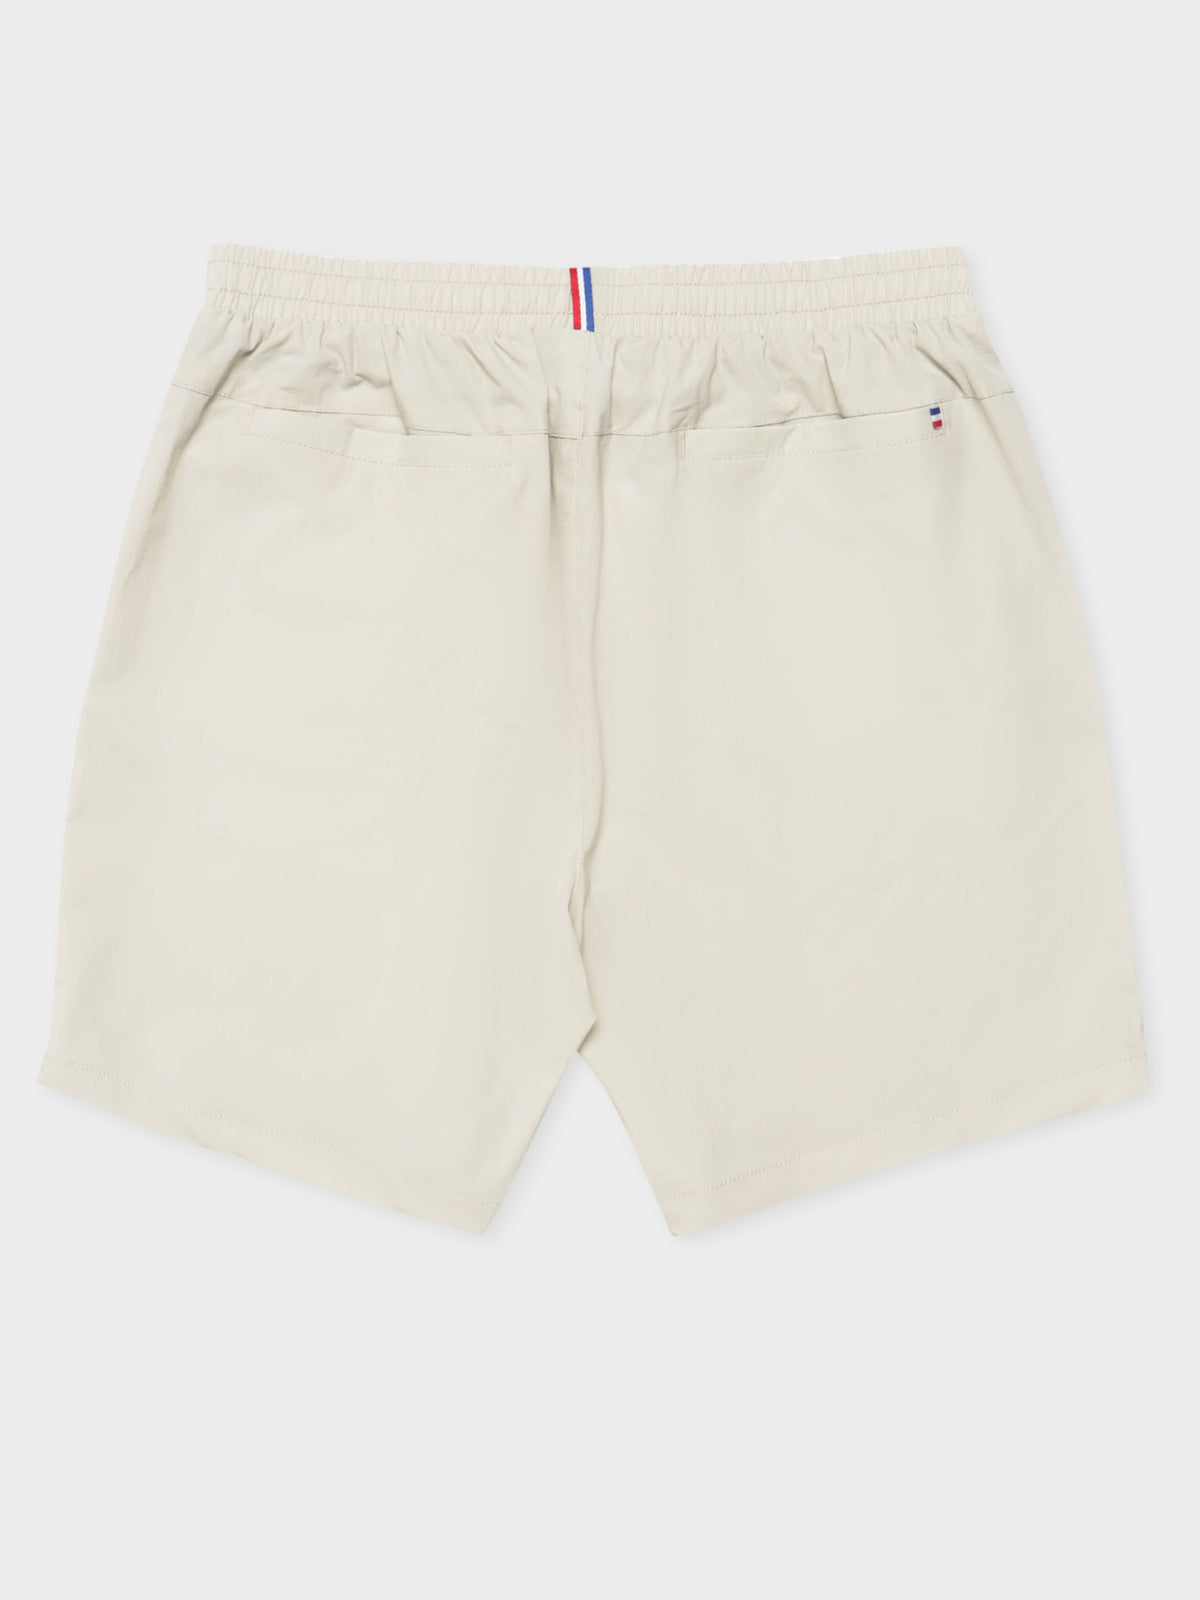 Concurrent Shorts in Oatmeal